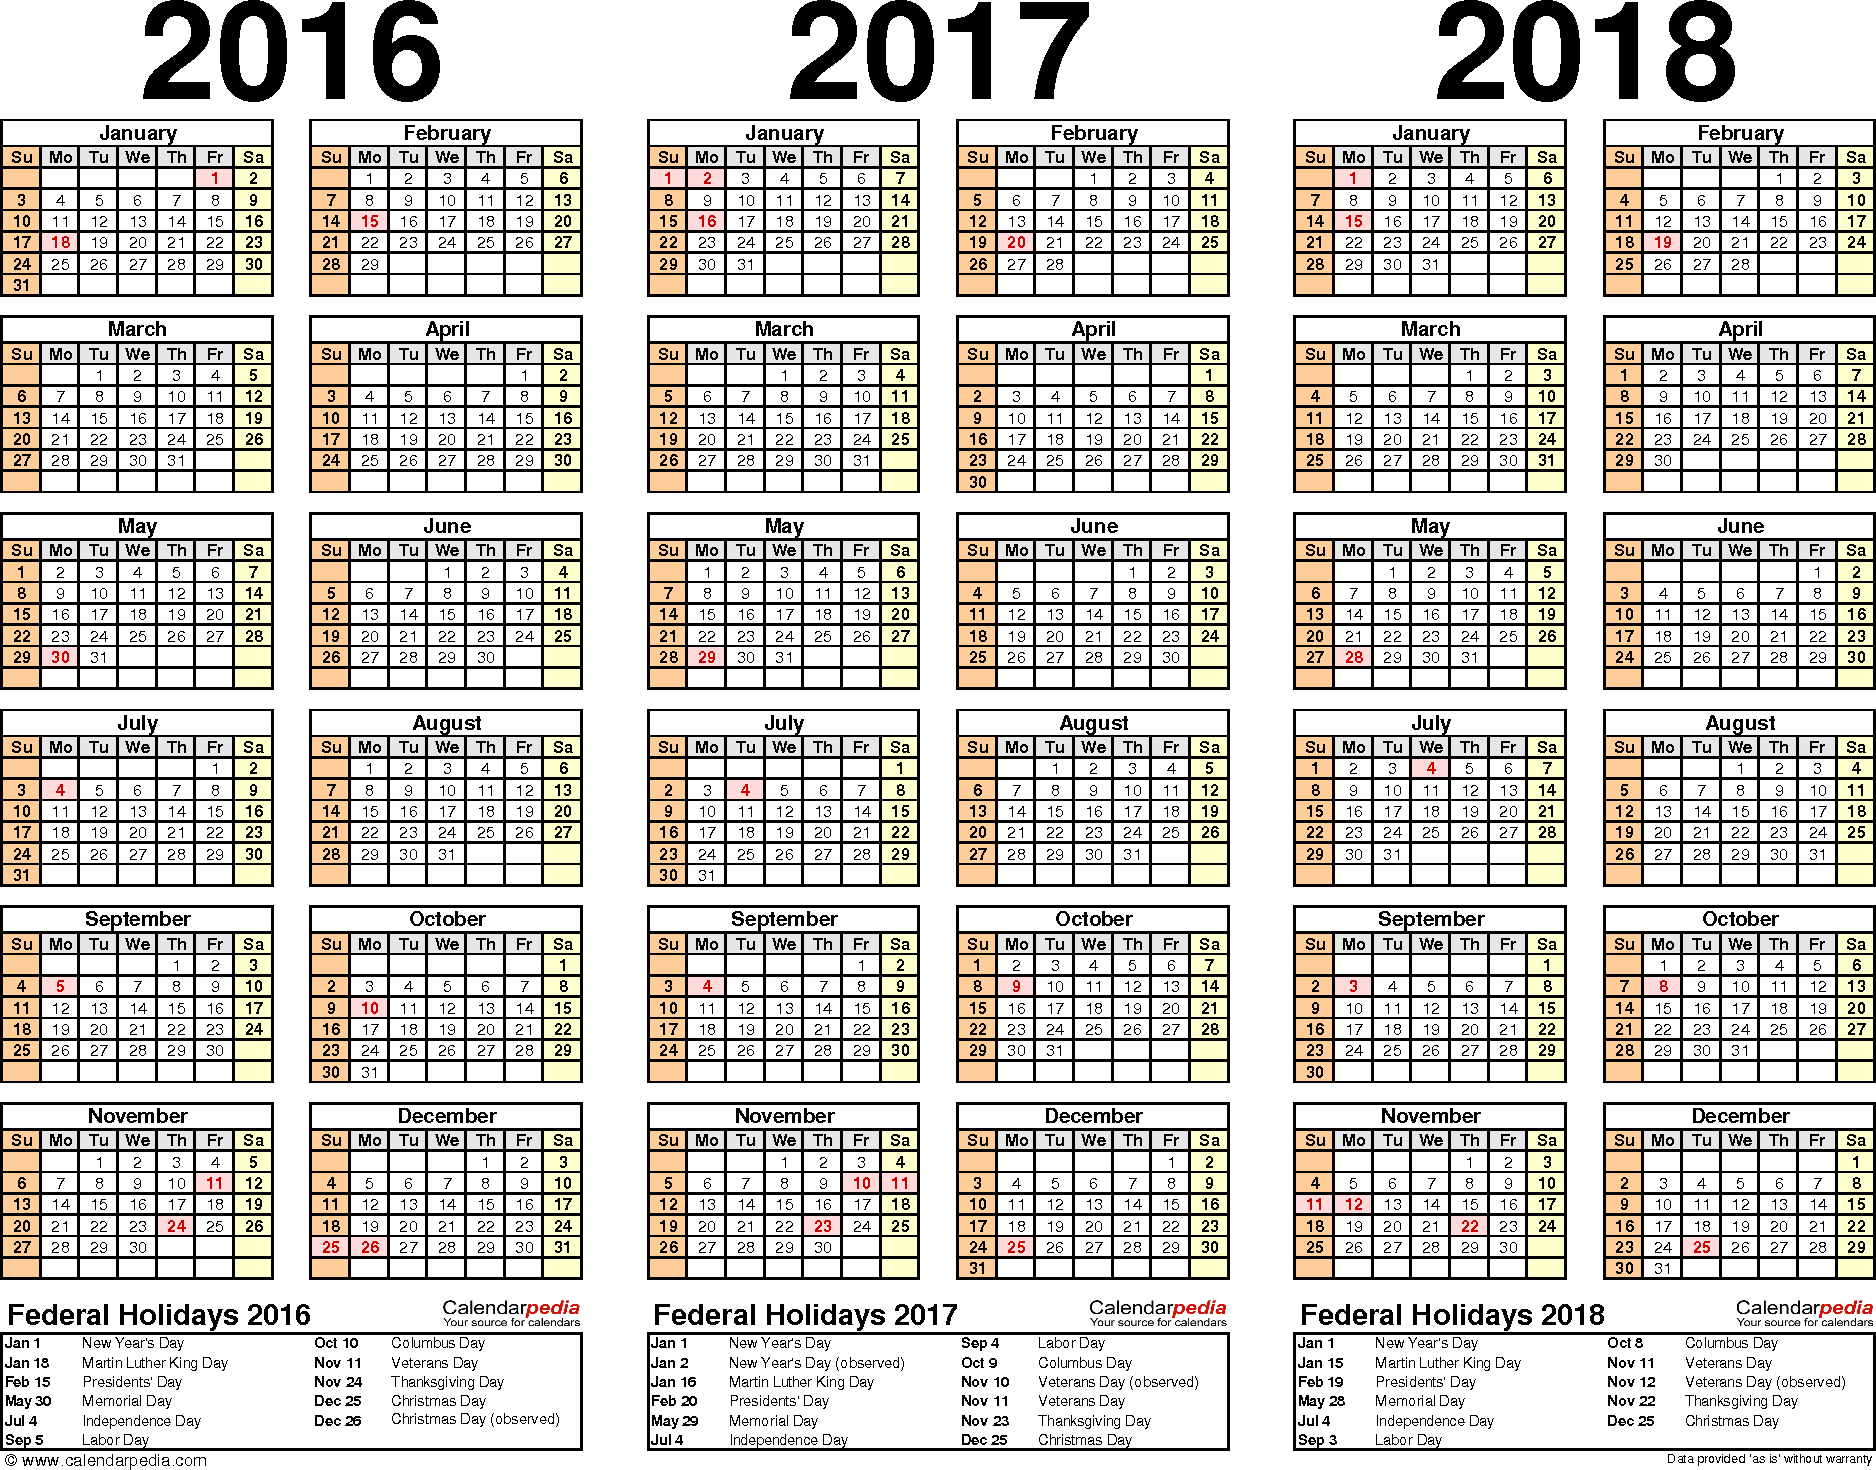 Template 2: Word template for three year calendar 2016-2018 (landscape orientation, 1 page)